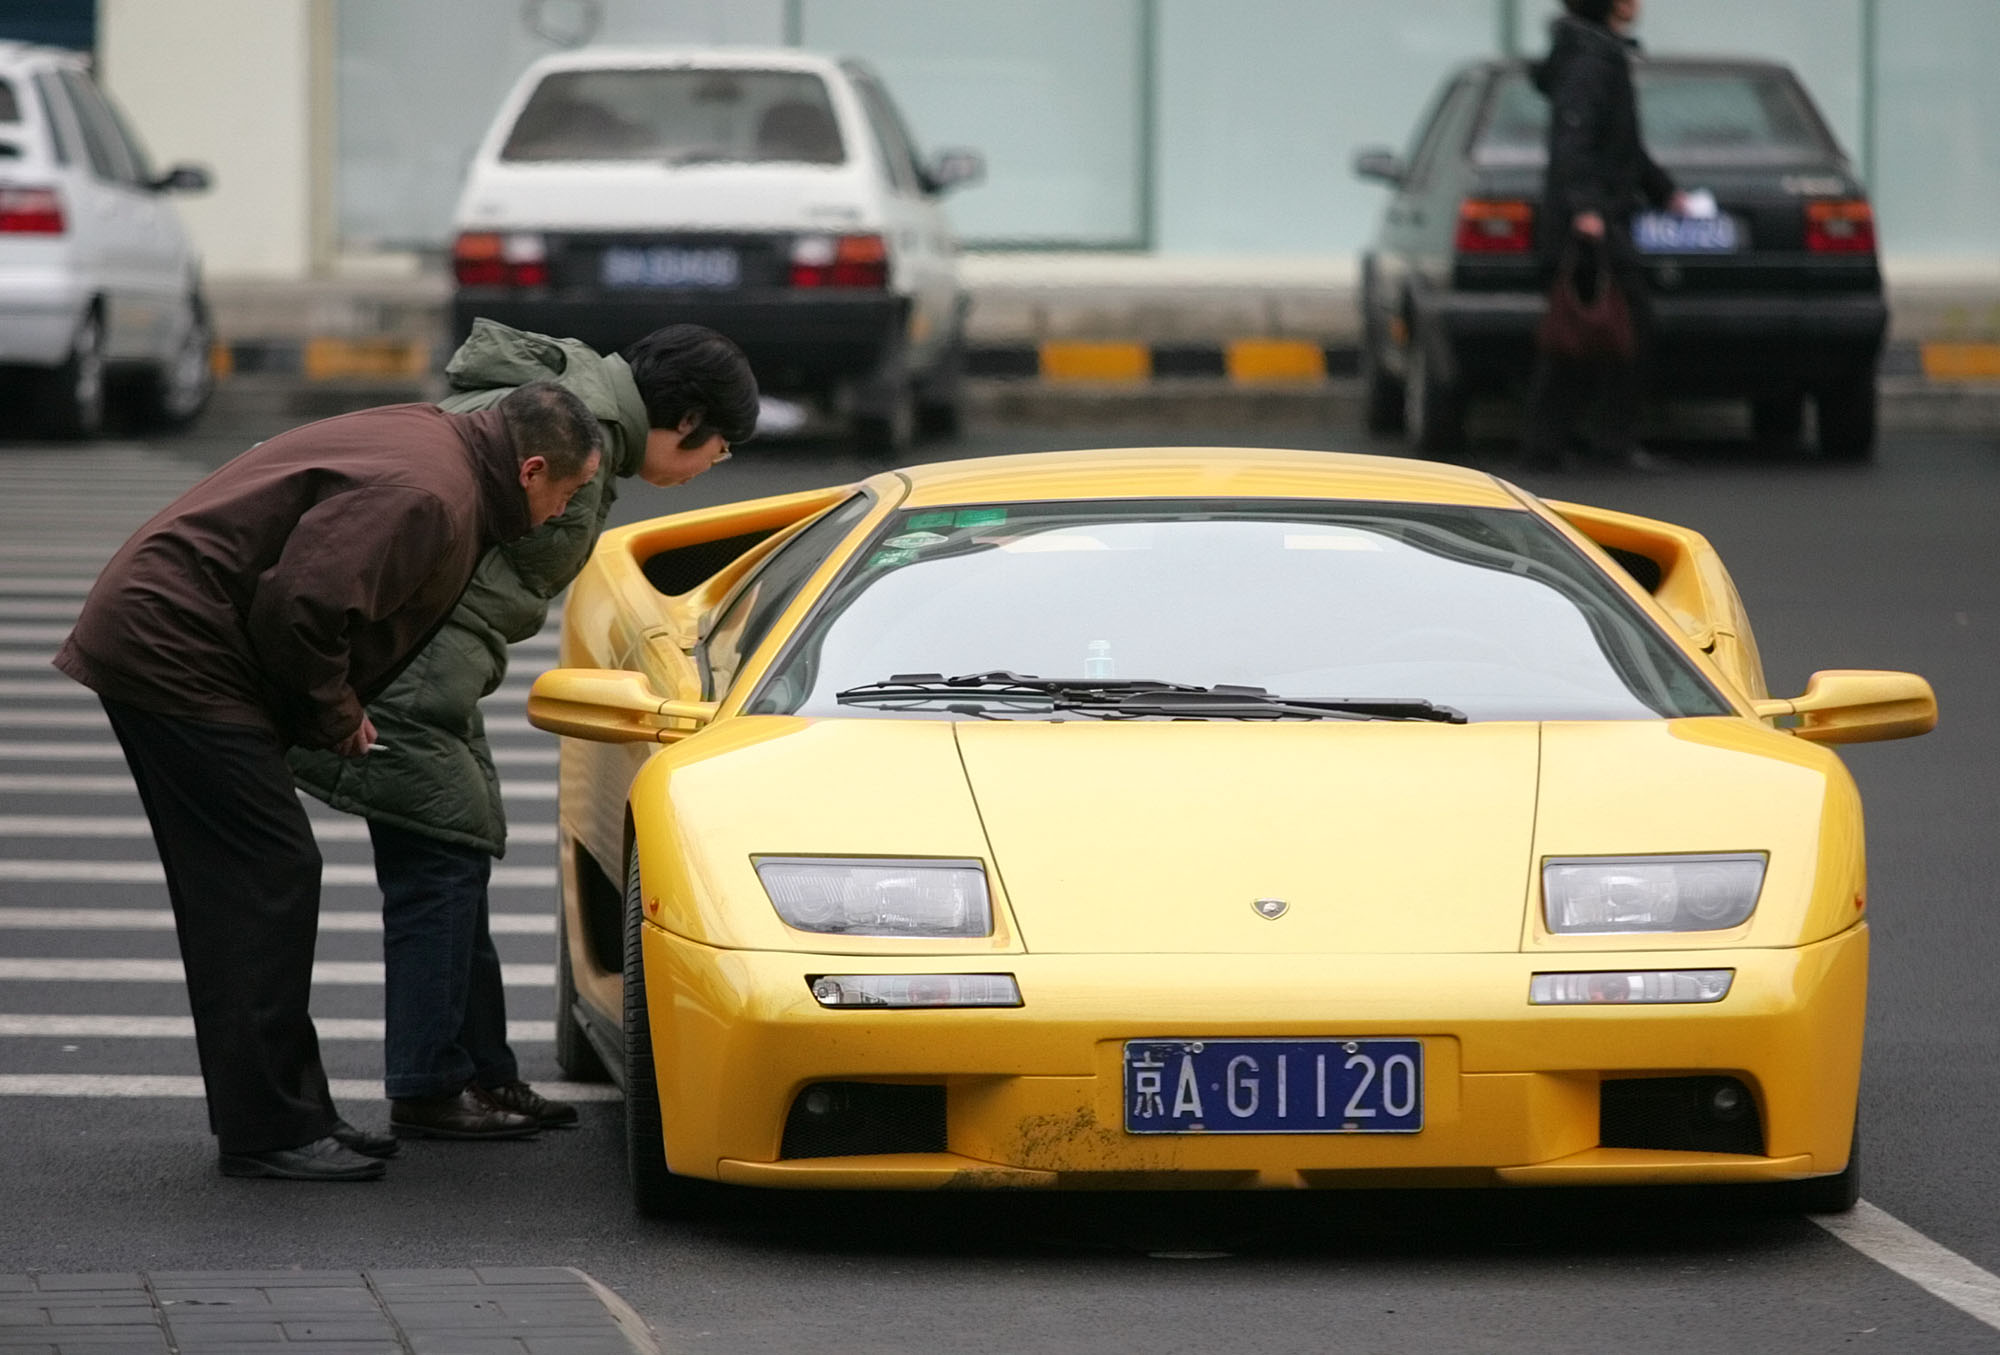 A couple get a close-up look at a Lamborghini Diablo VT parked in Beijing Thursday, Dec. 16, 2004. Two decades of economic reforms in China have resulted in riches for some, but at least 29 million people still live below poverty levels, according to government figures.